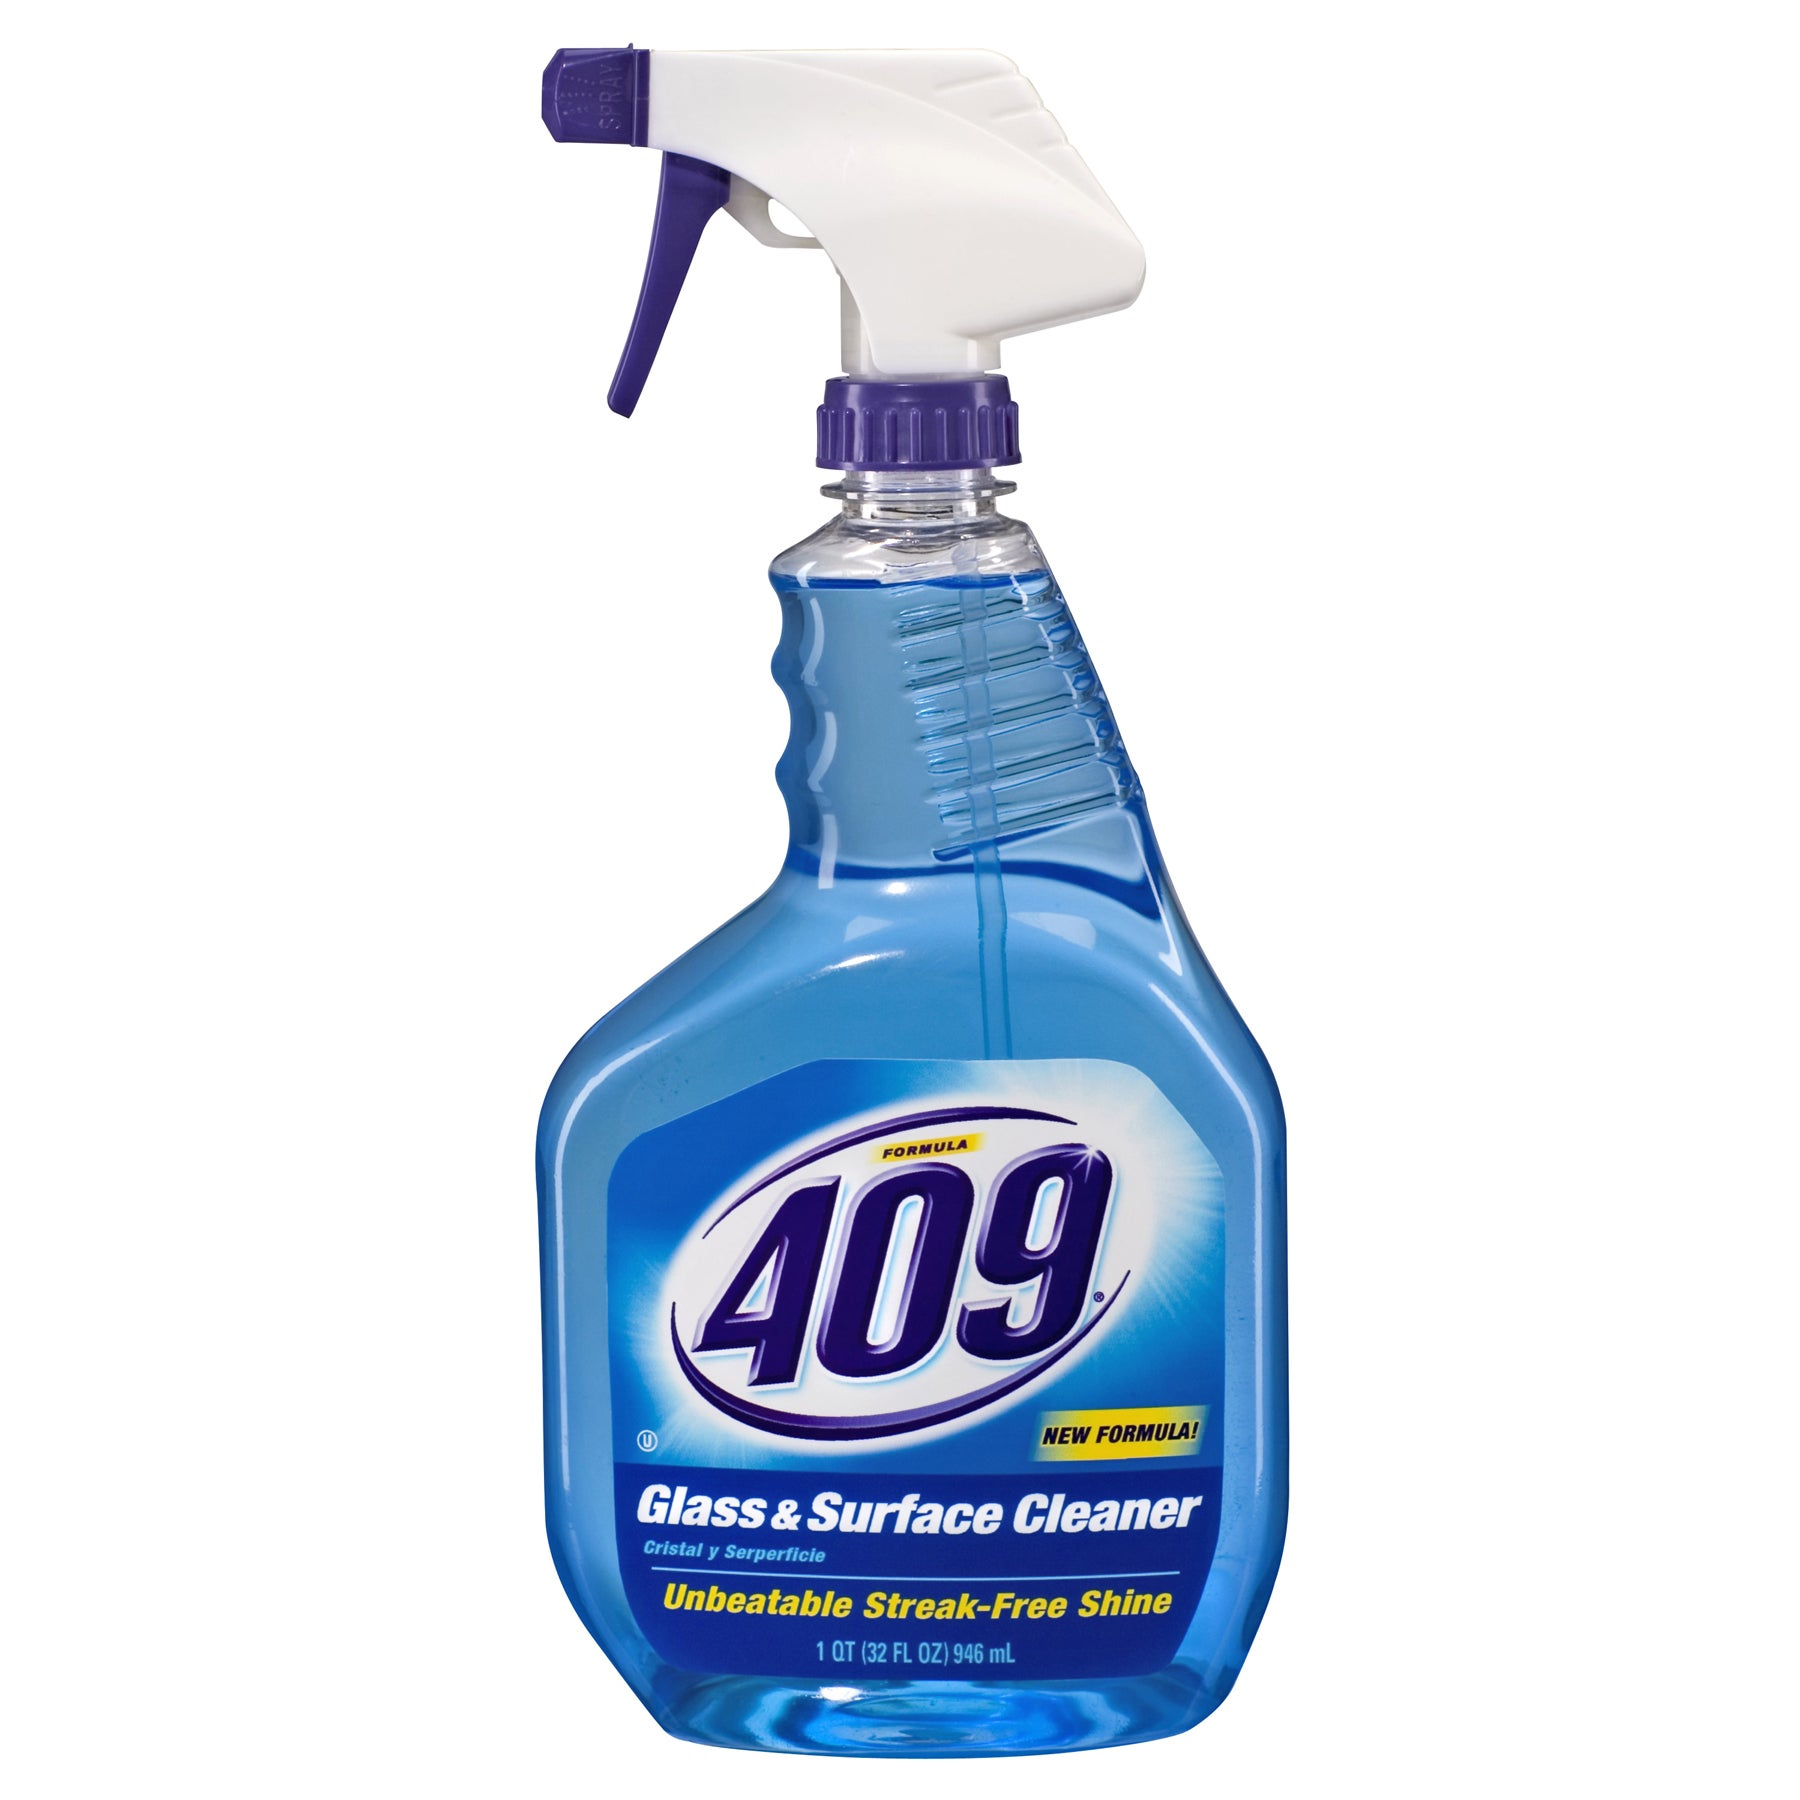 Bissell 409 14812 32 Oz Formula 409 Glass & Surface Clean...